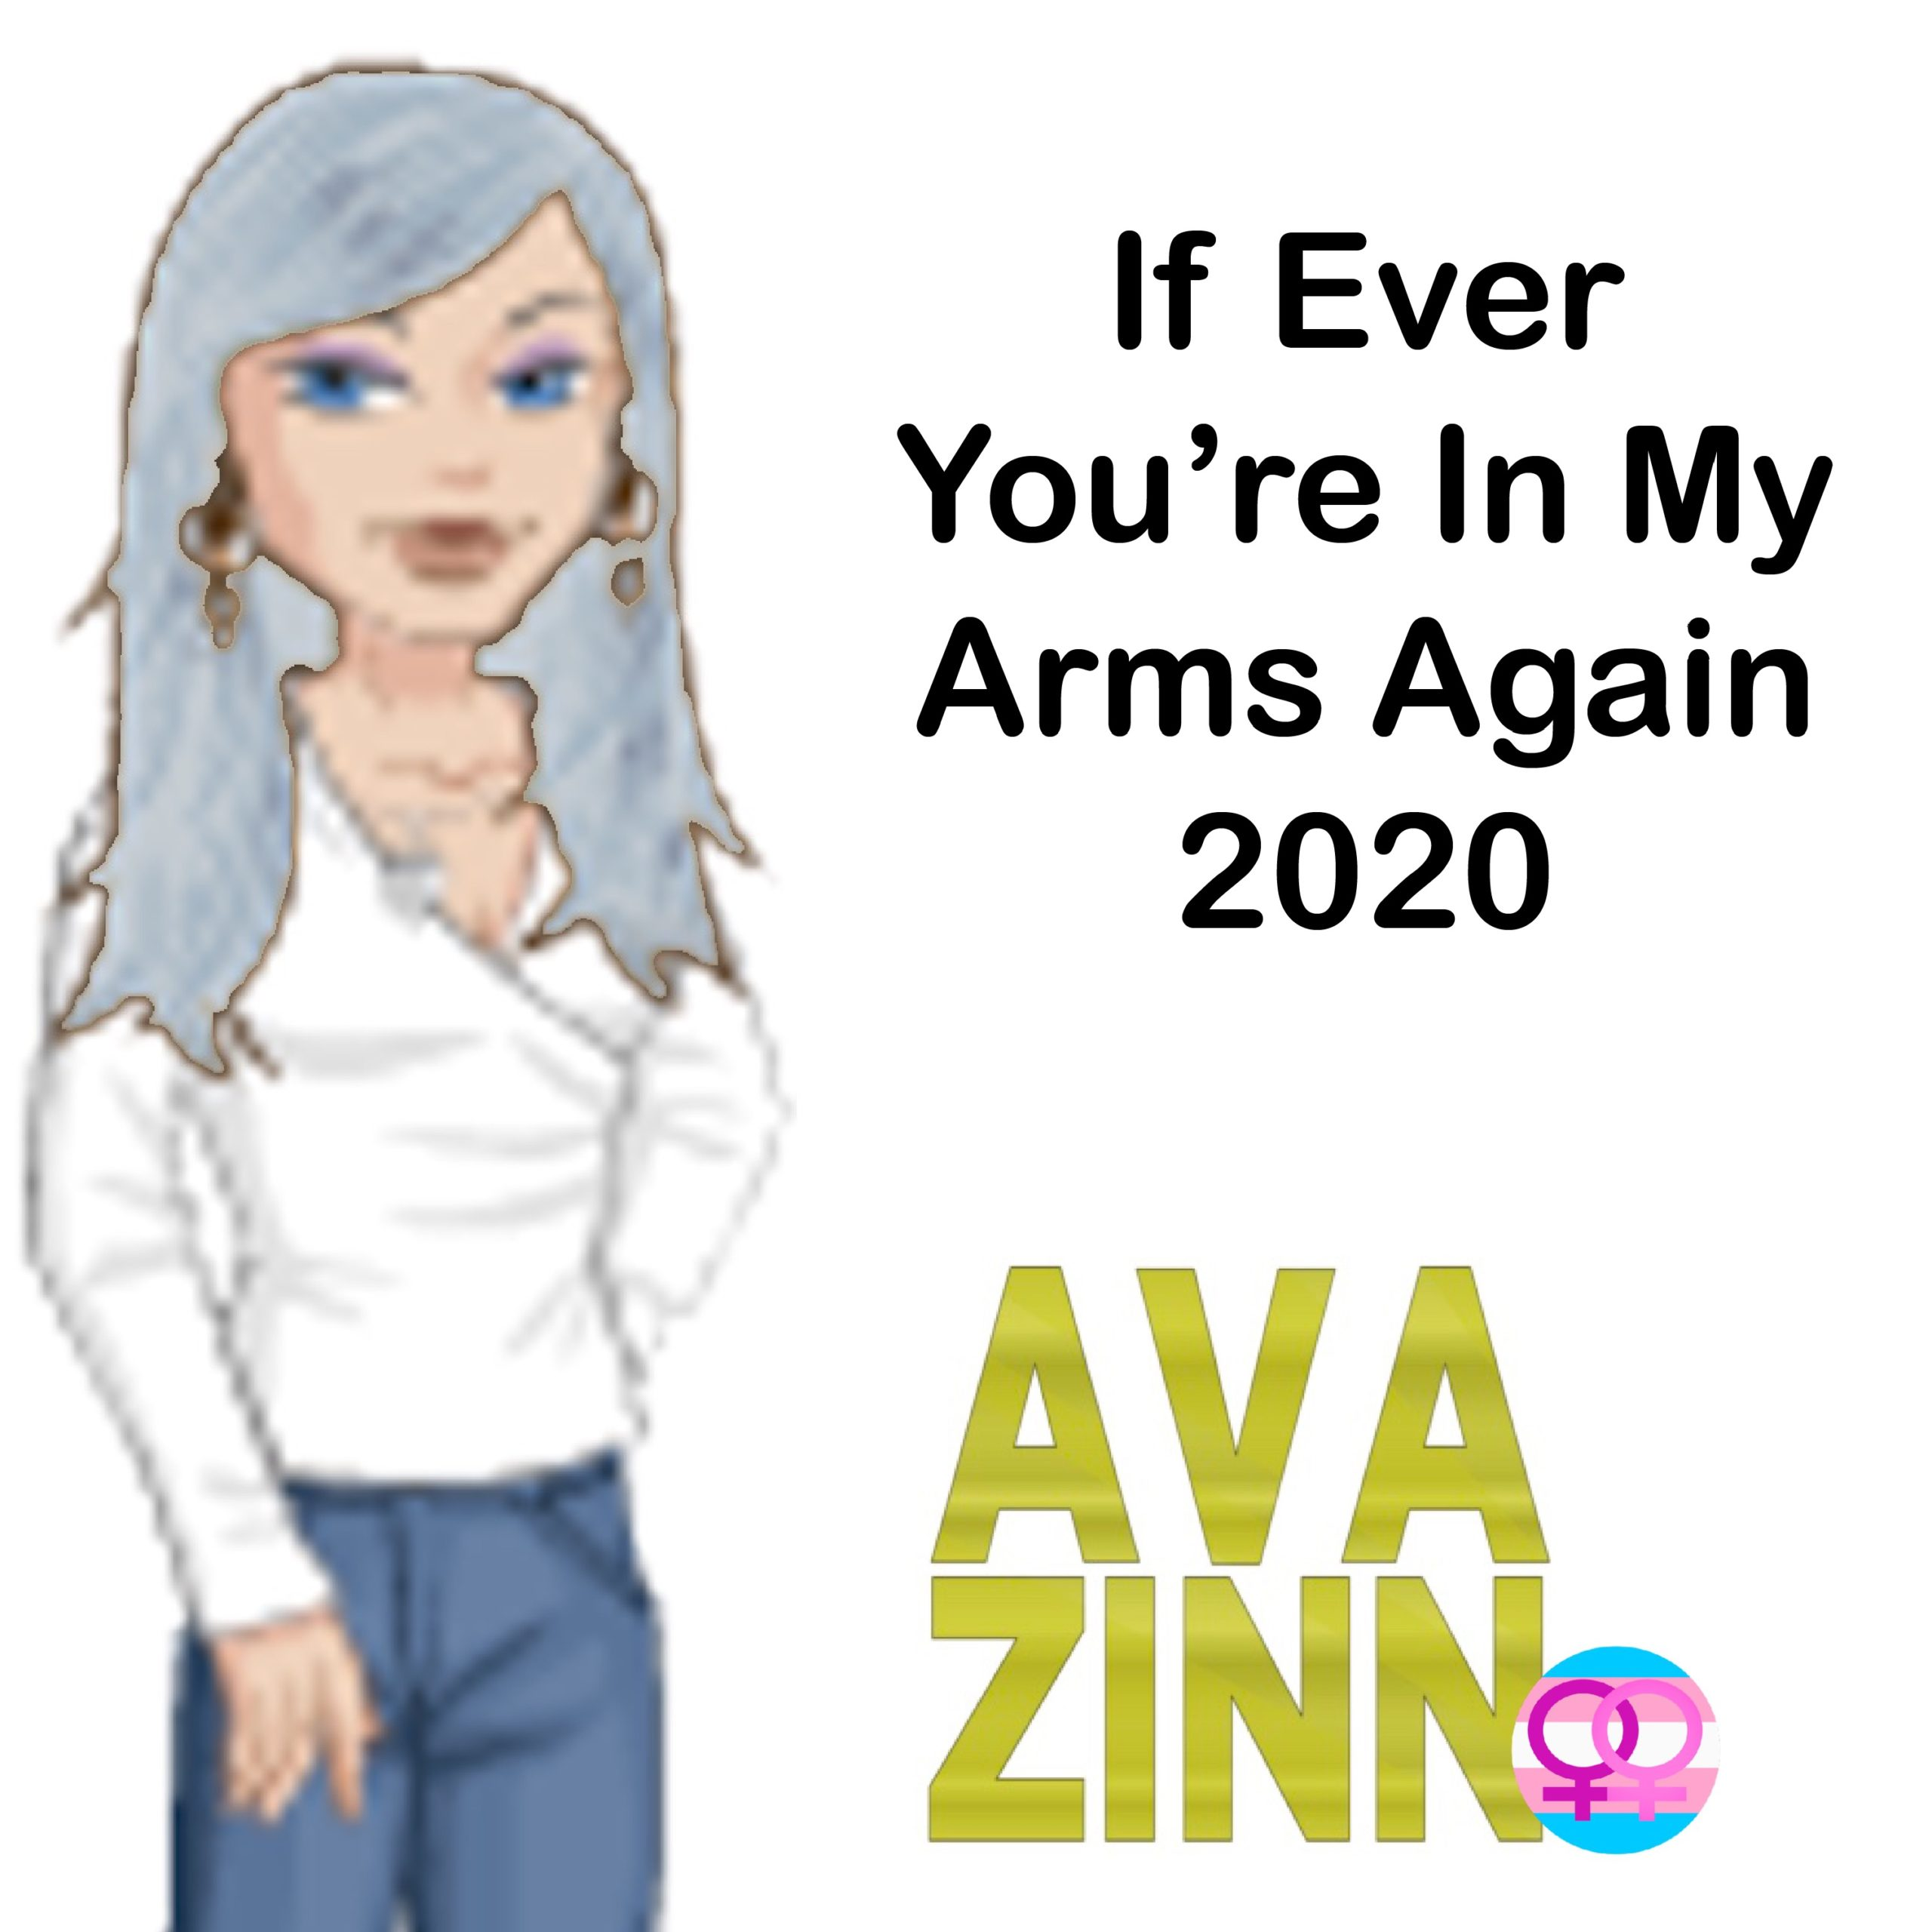 If Ever You're in My Arms Again 2020